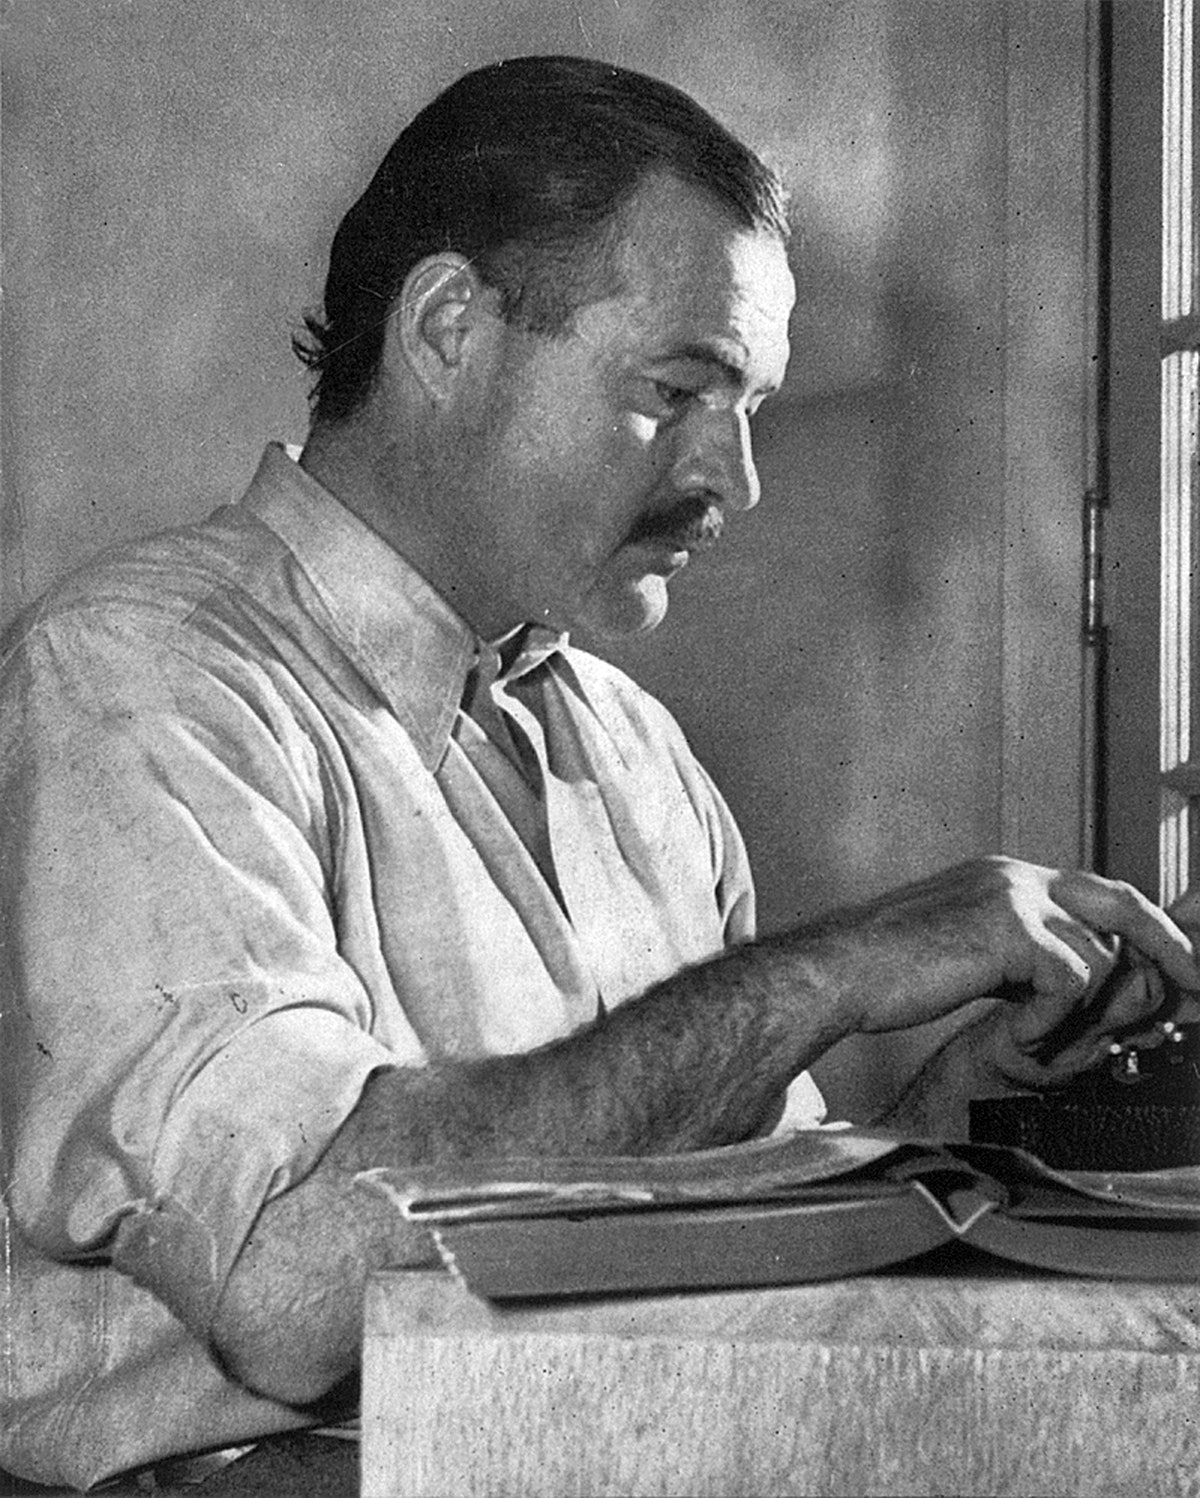 hemingway untitled Here are links to order books mentioned in the hemingway timeline: sun also rises in our time men without women winner take nothing farewell to arms death in the afternoon fifth column and four stories of the spanish civil war green hills of africa to have and have not for whom the bell tolls across.